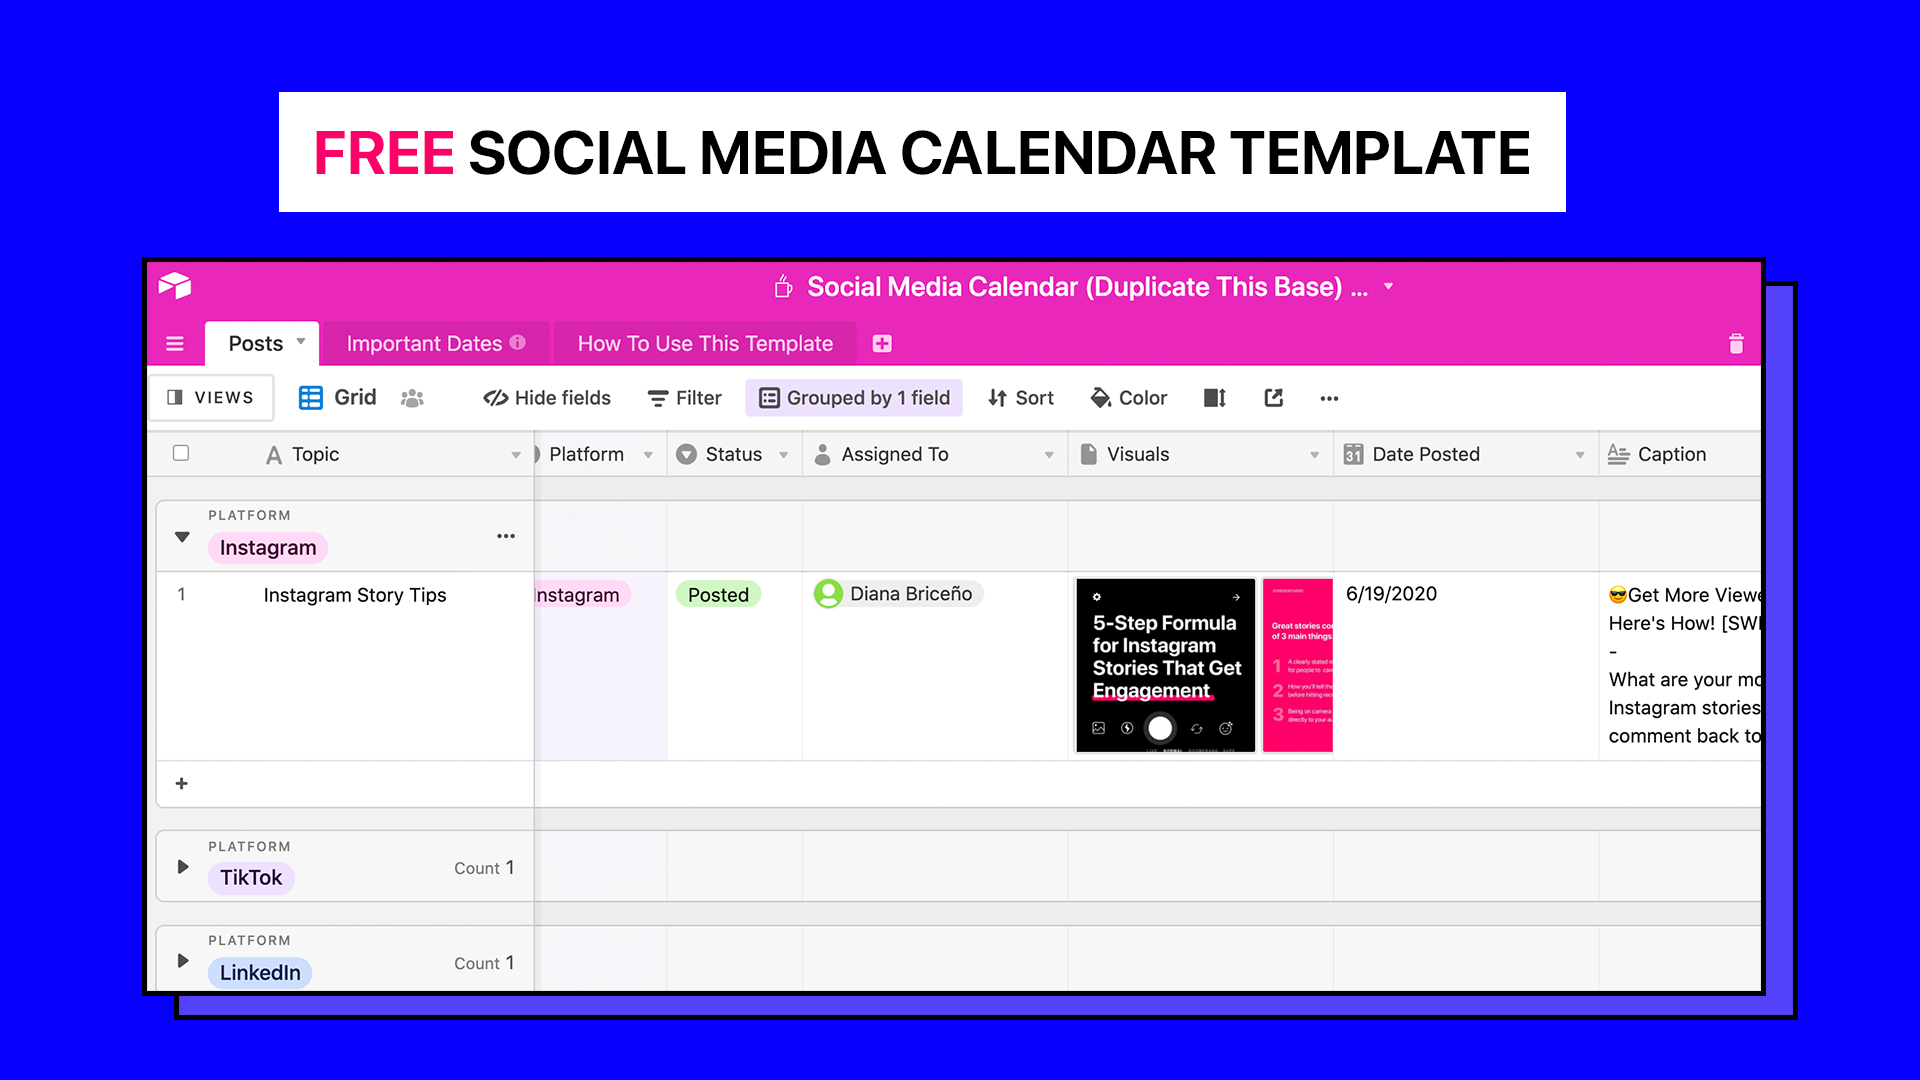 The Only Social Media Calendar Template You'll Ever Need